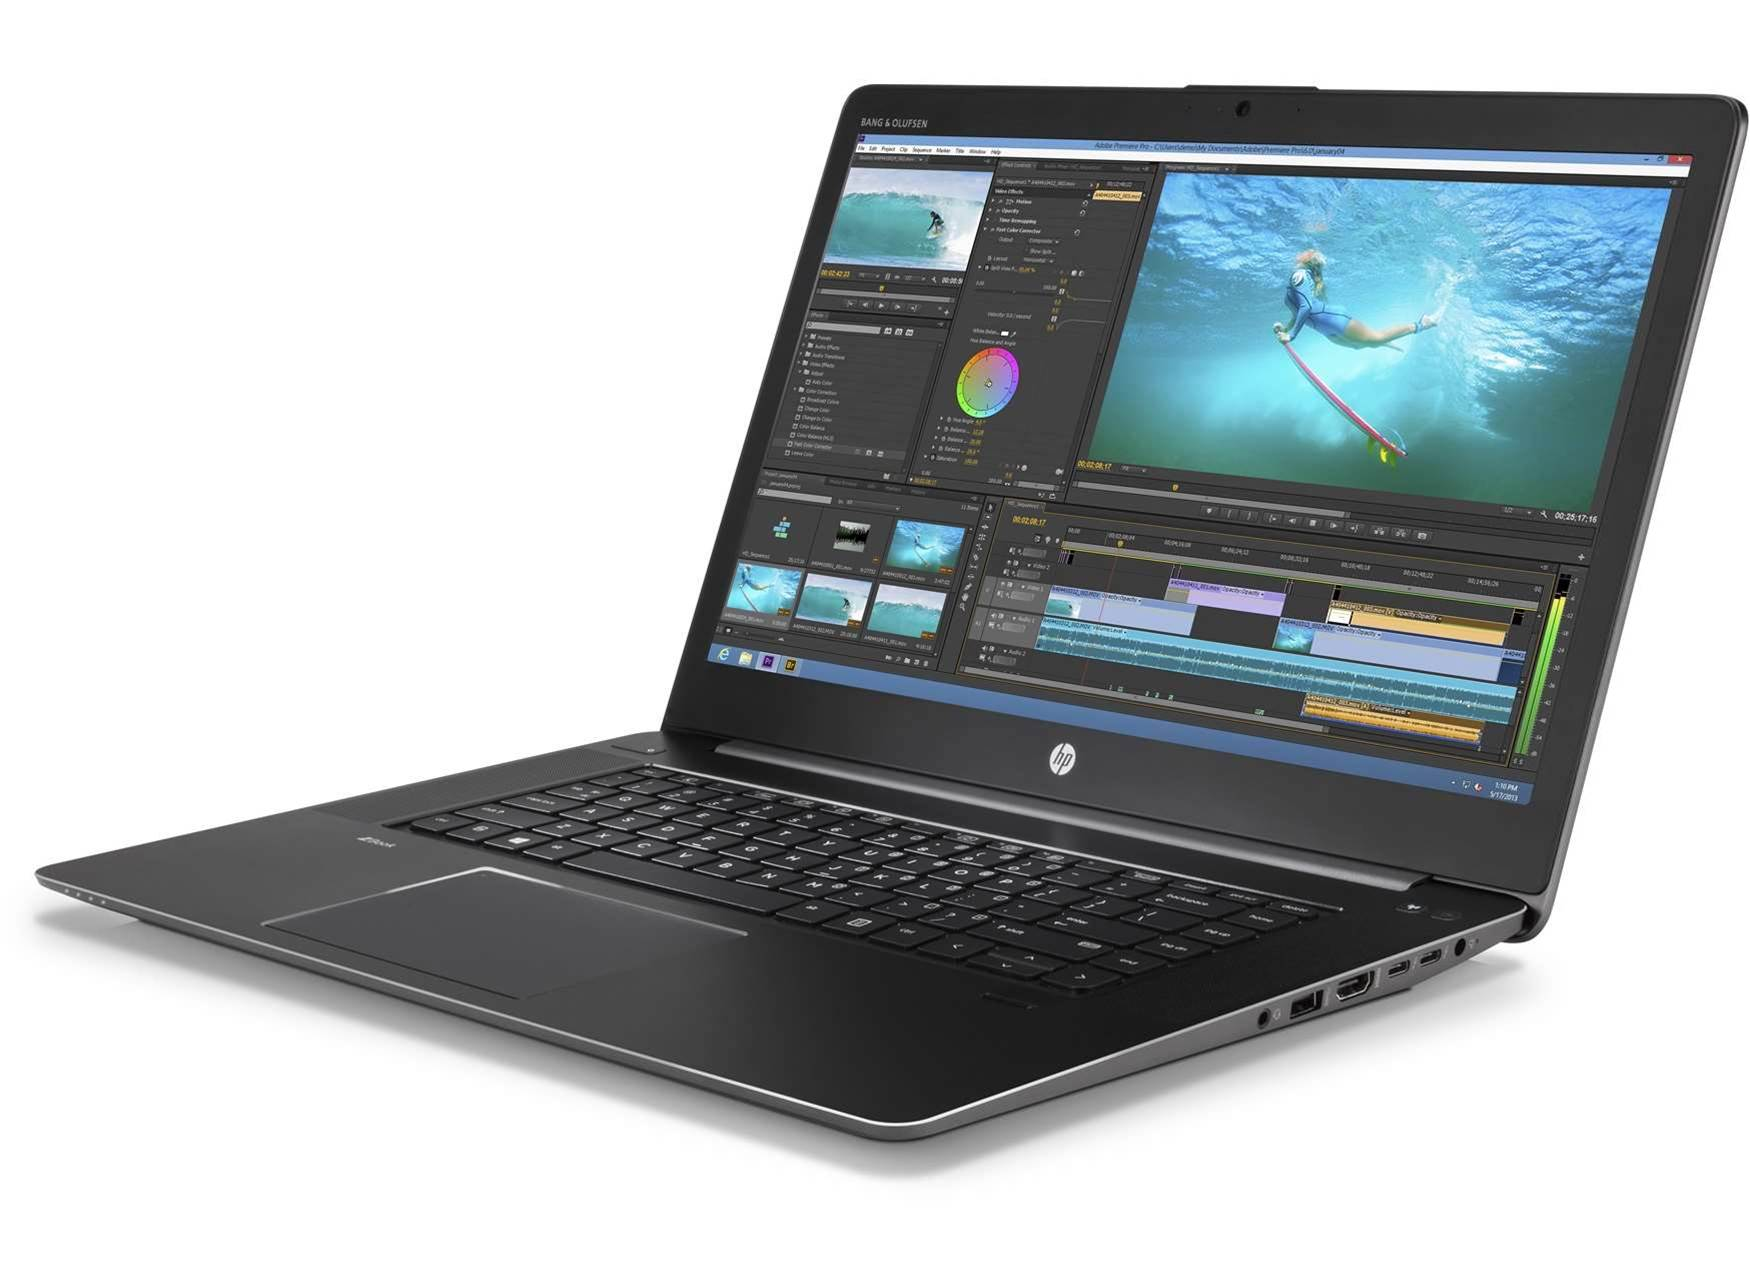 Review: HP ZBook Studio G3